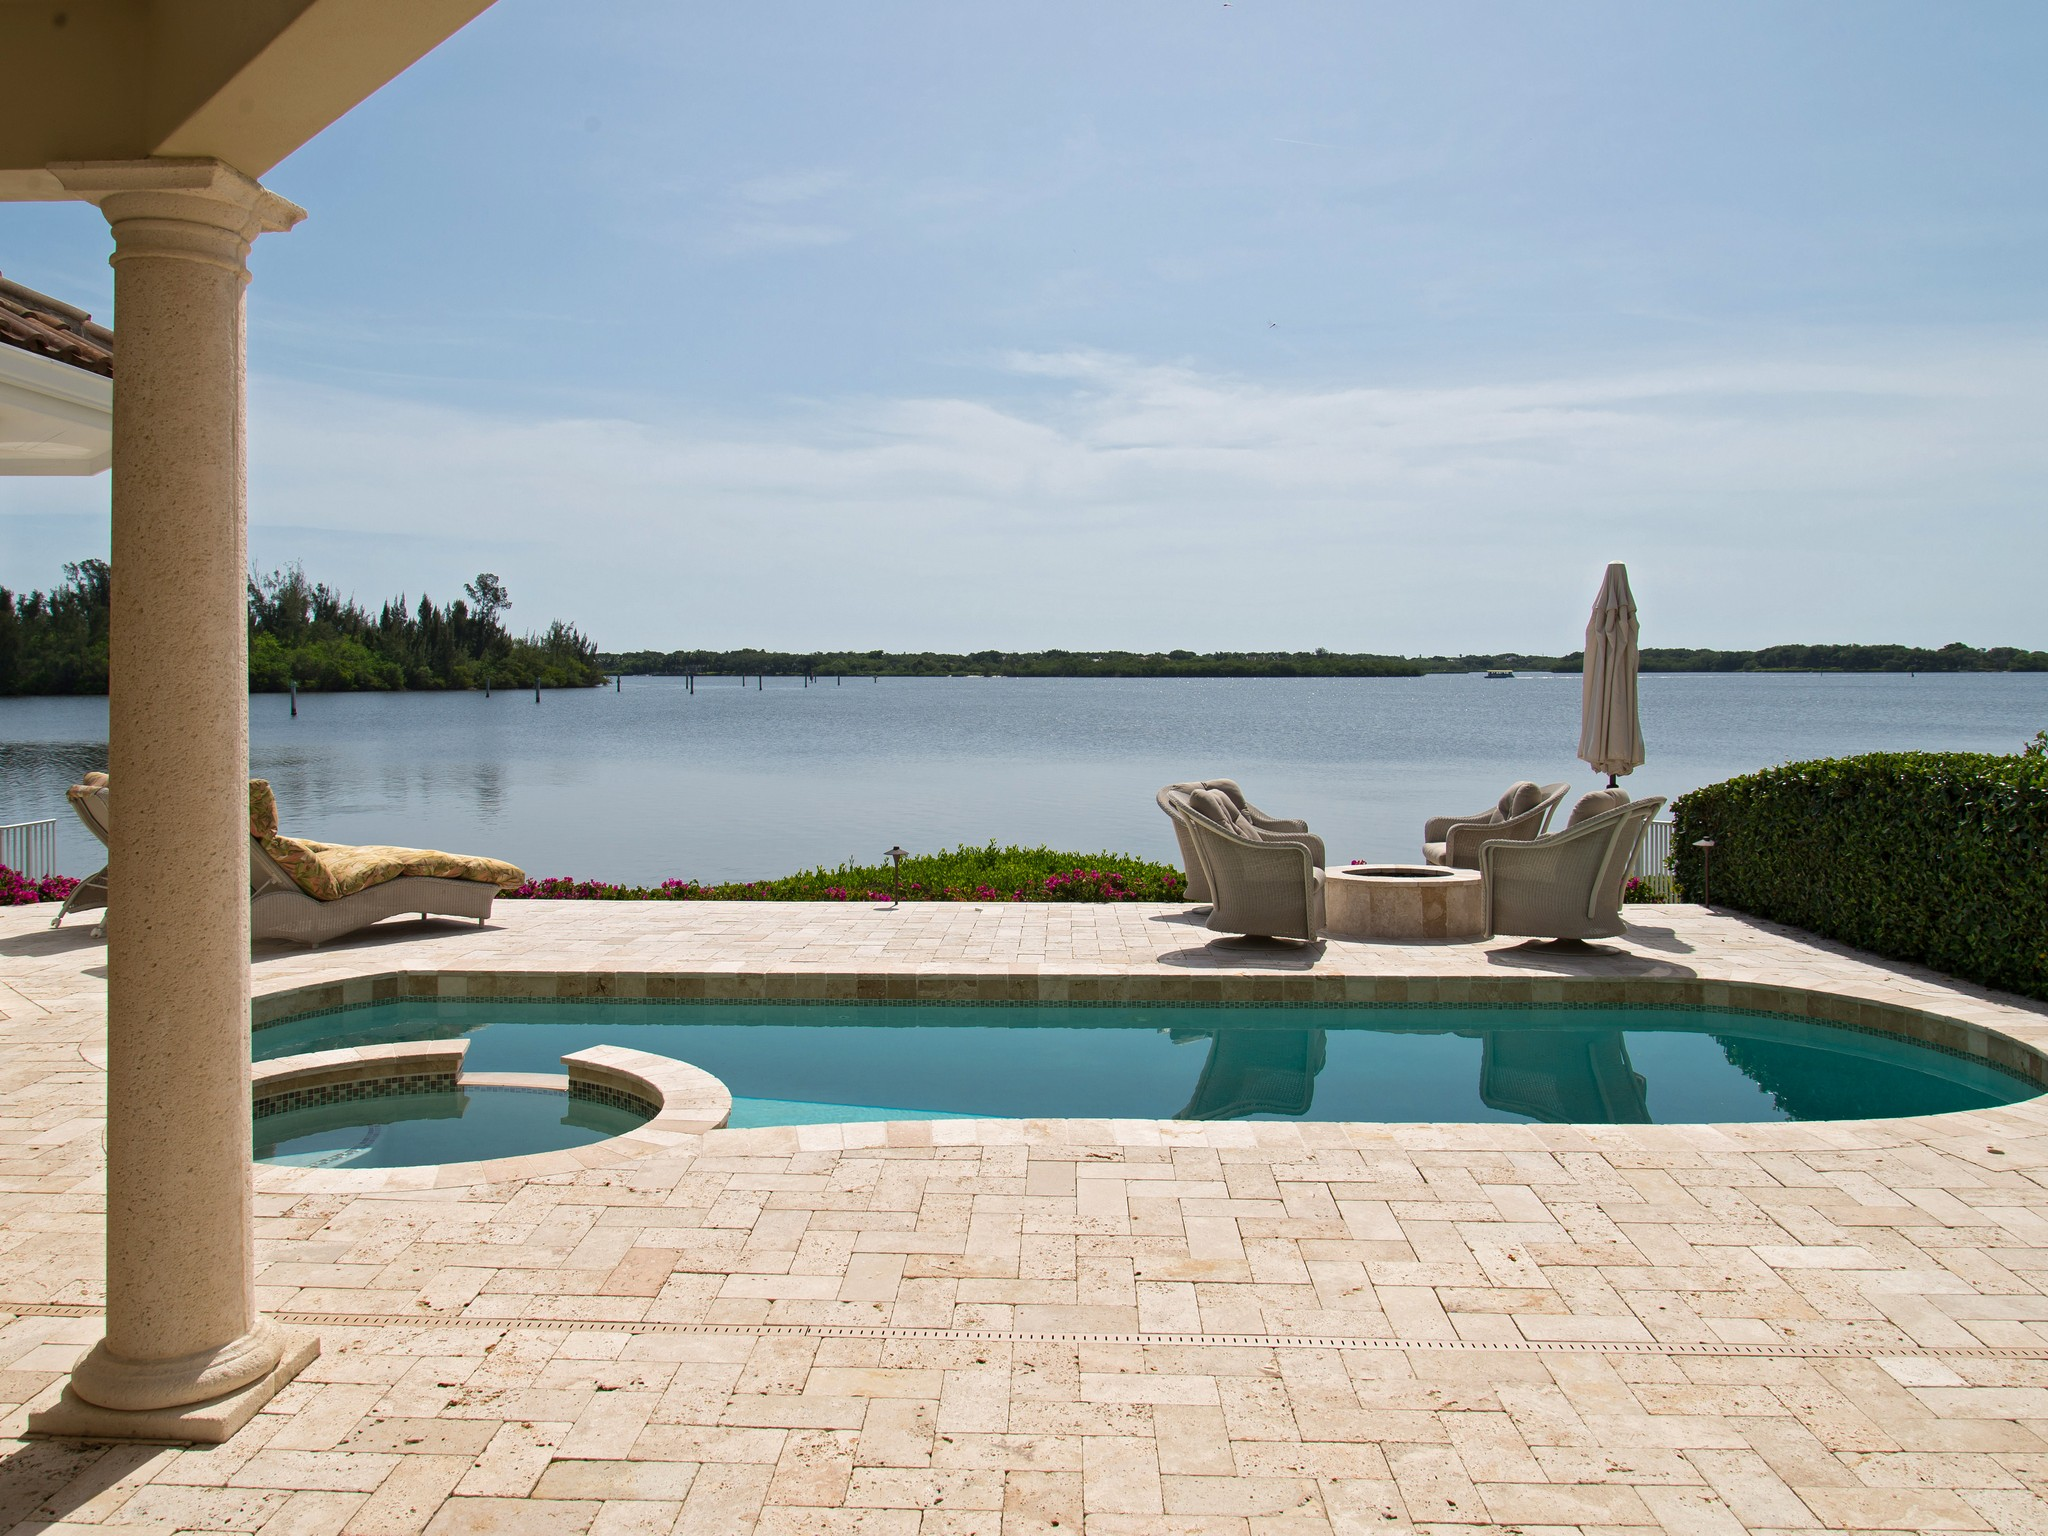 独户住宅 为 销售 在 Riverfront Masterpiece 5560 E. Harbor Village Drive Vero Beach, 佛罗里达州 32967 美国